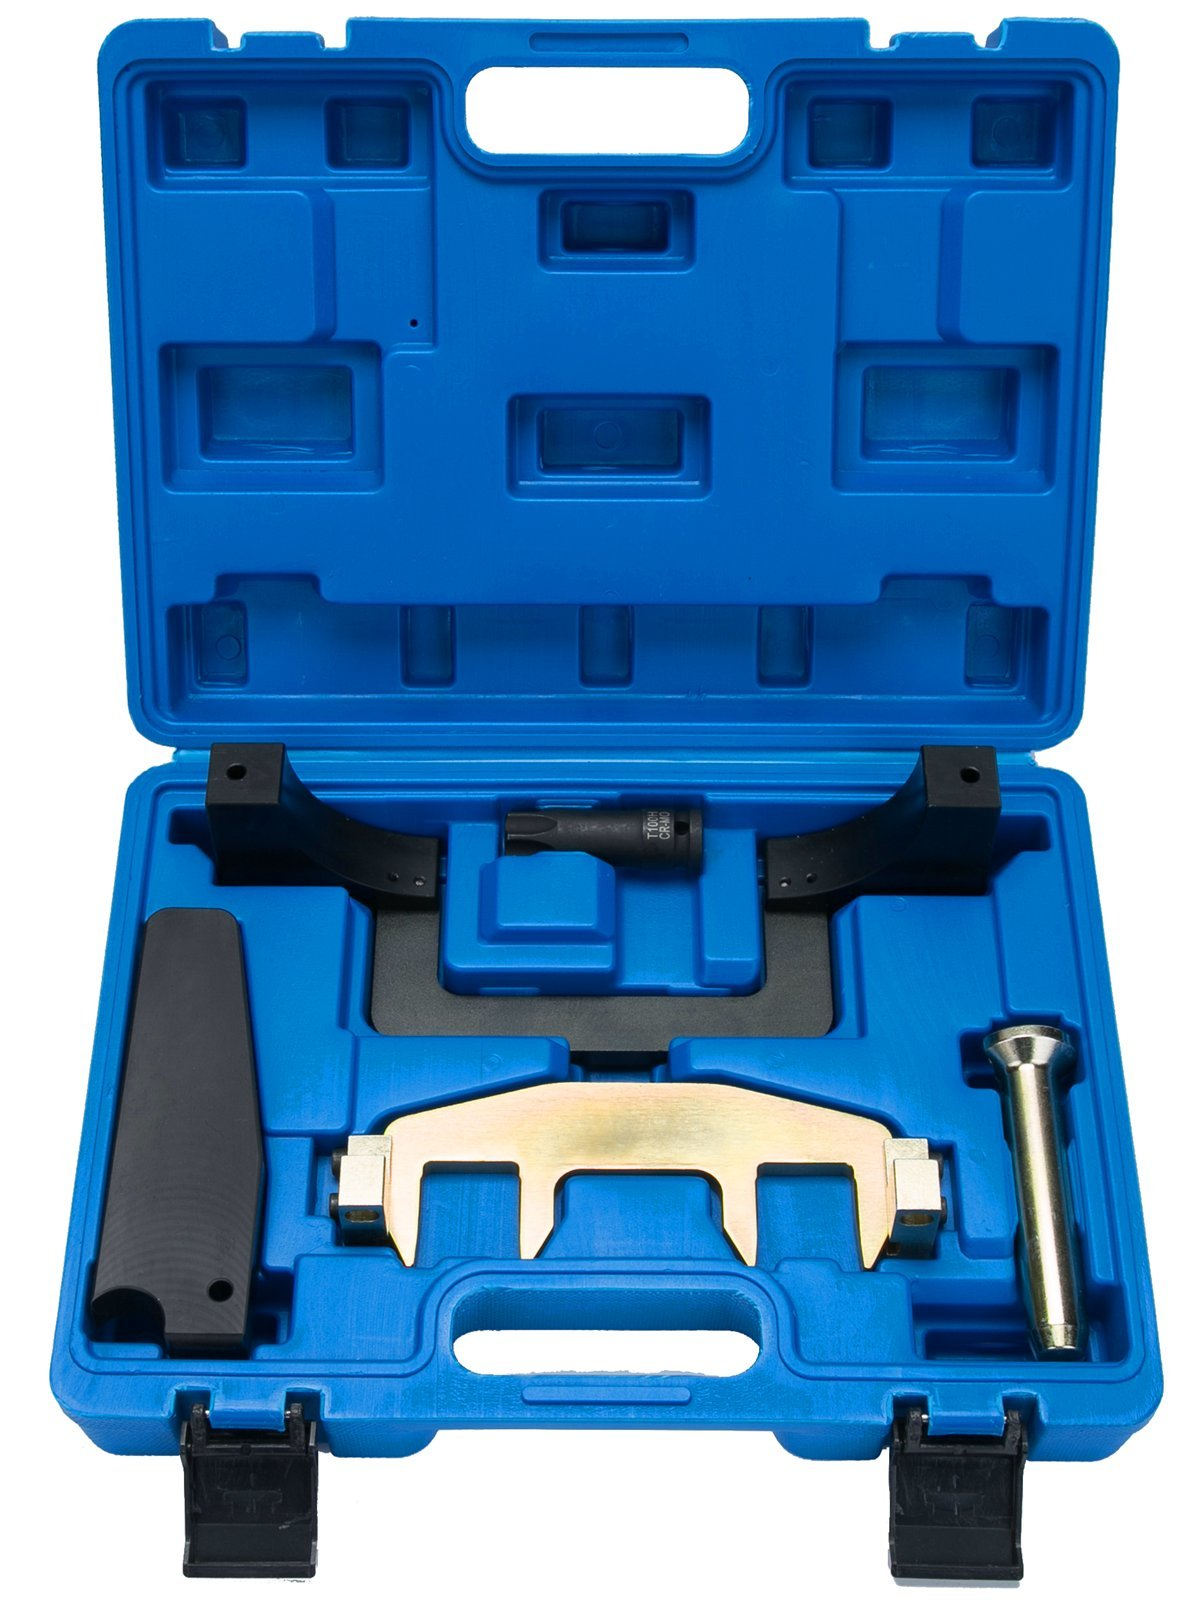 8milelake Camshaft Alignment Timing Chain Fixture Tool Kit for Mercedes Benz M271